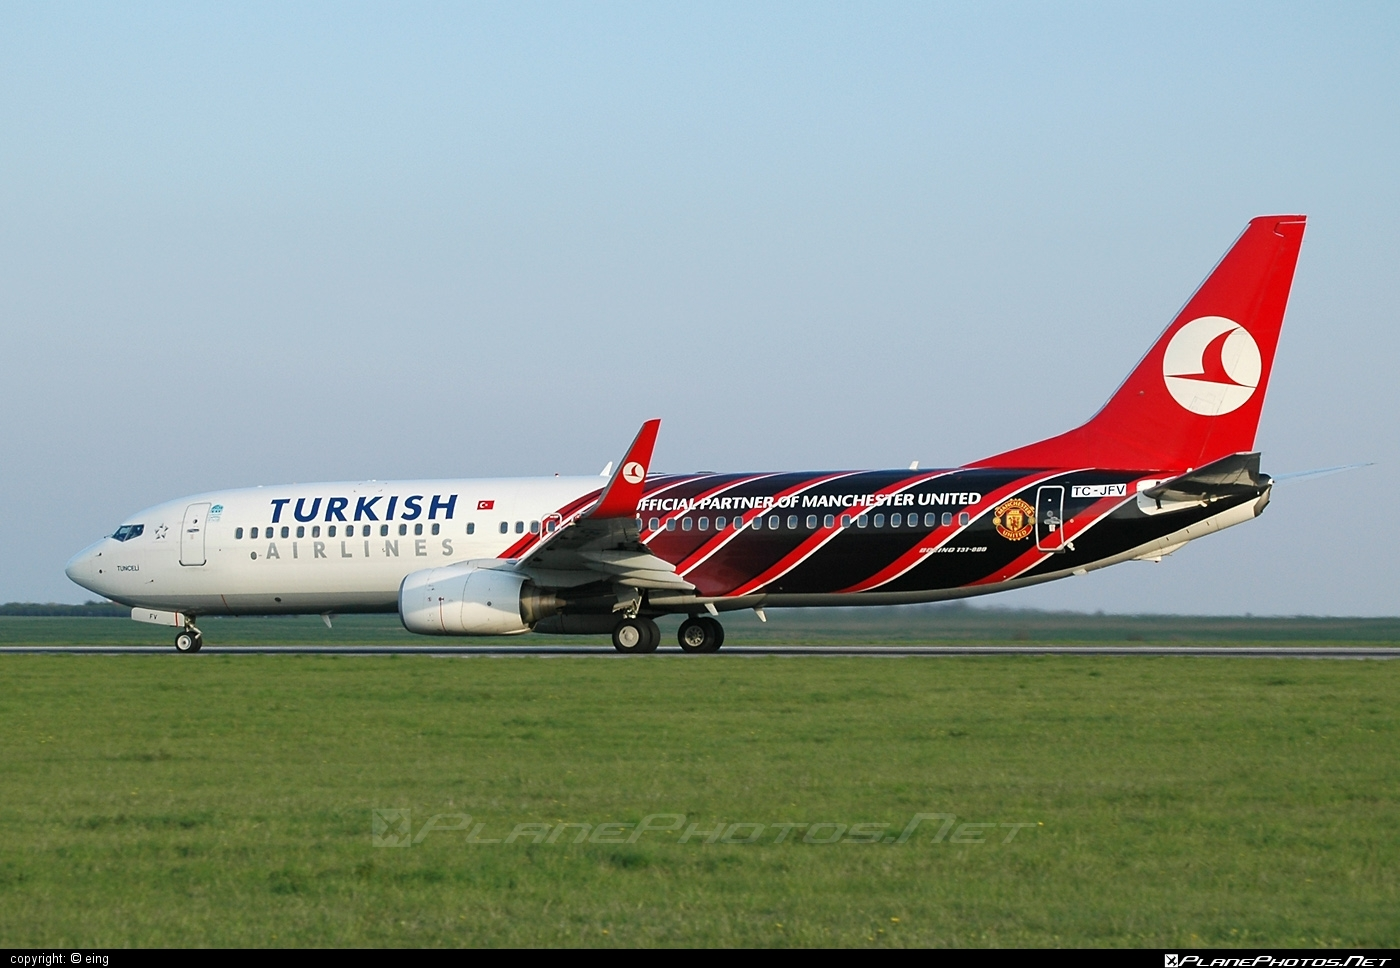 Boeing 737-800 - TC-JFV operated by Turkish Airlines #b737 #b737nextgen #b737ng #boeing #boeing737 #turkishairlines